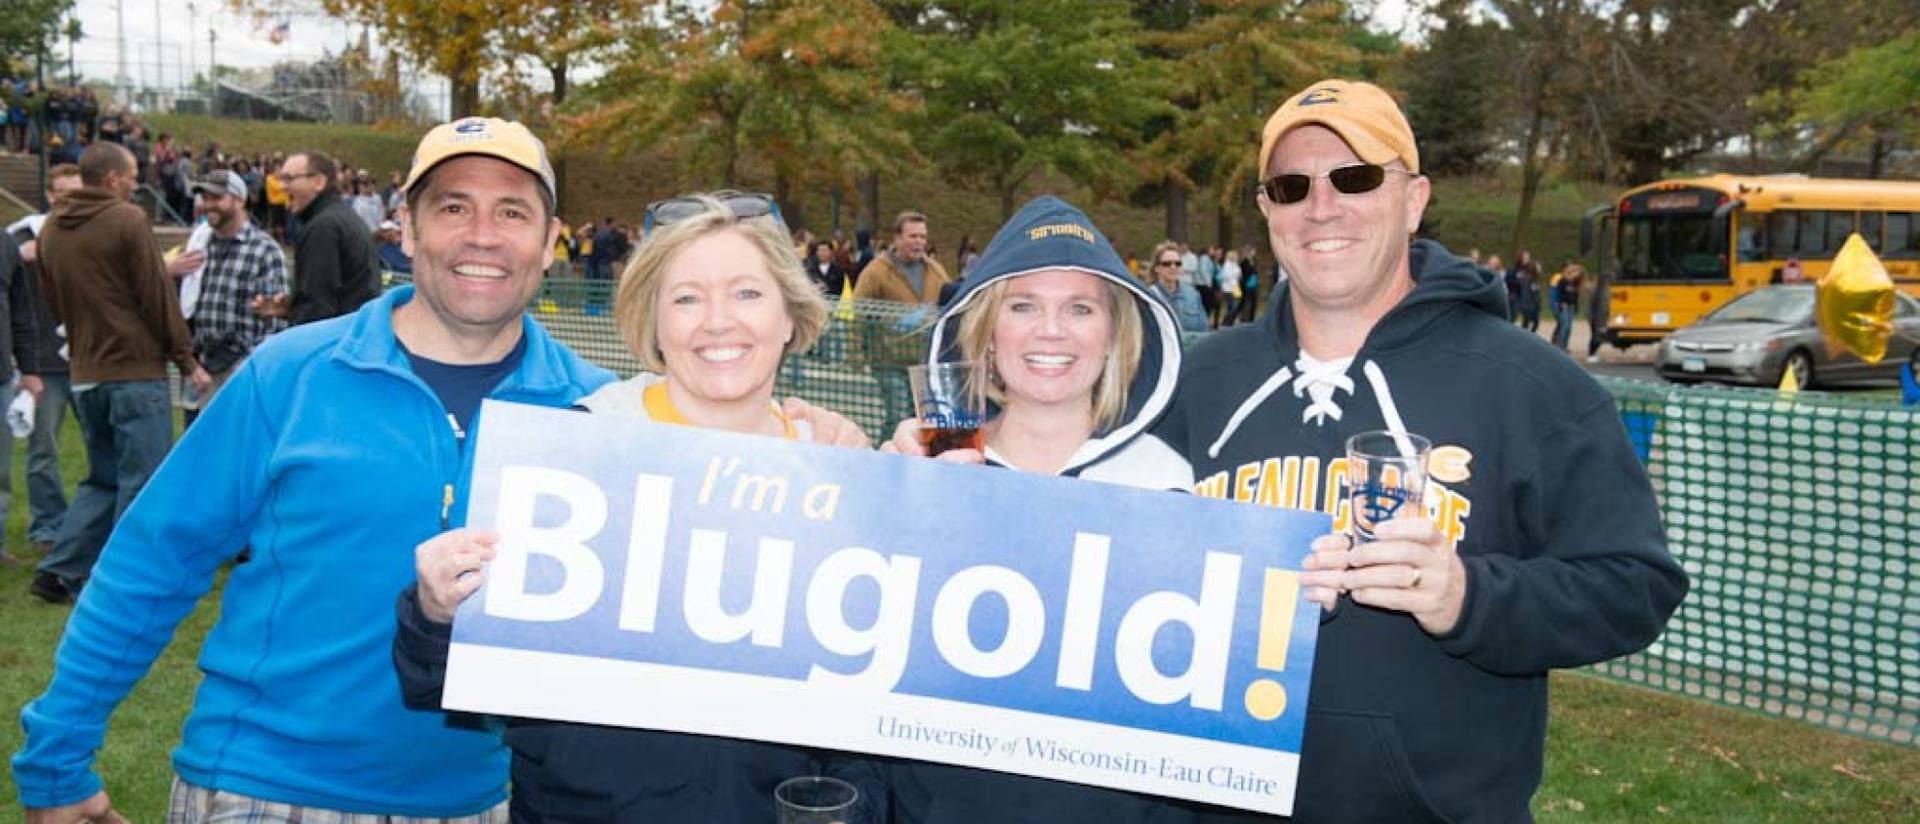 Happy Blugold Alumni at UW-Eau Claire homecoming in Carson Park.